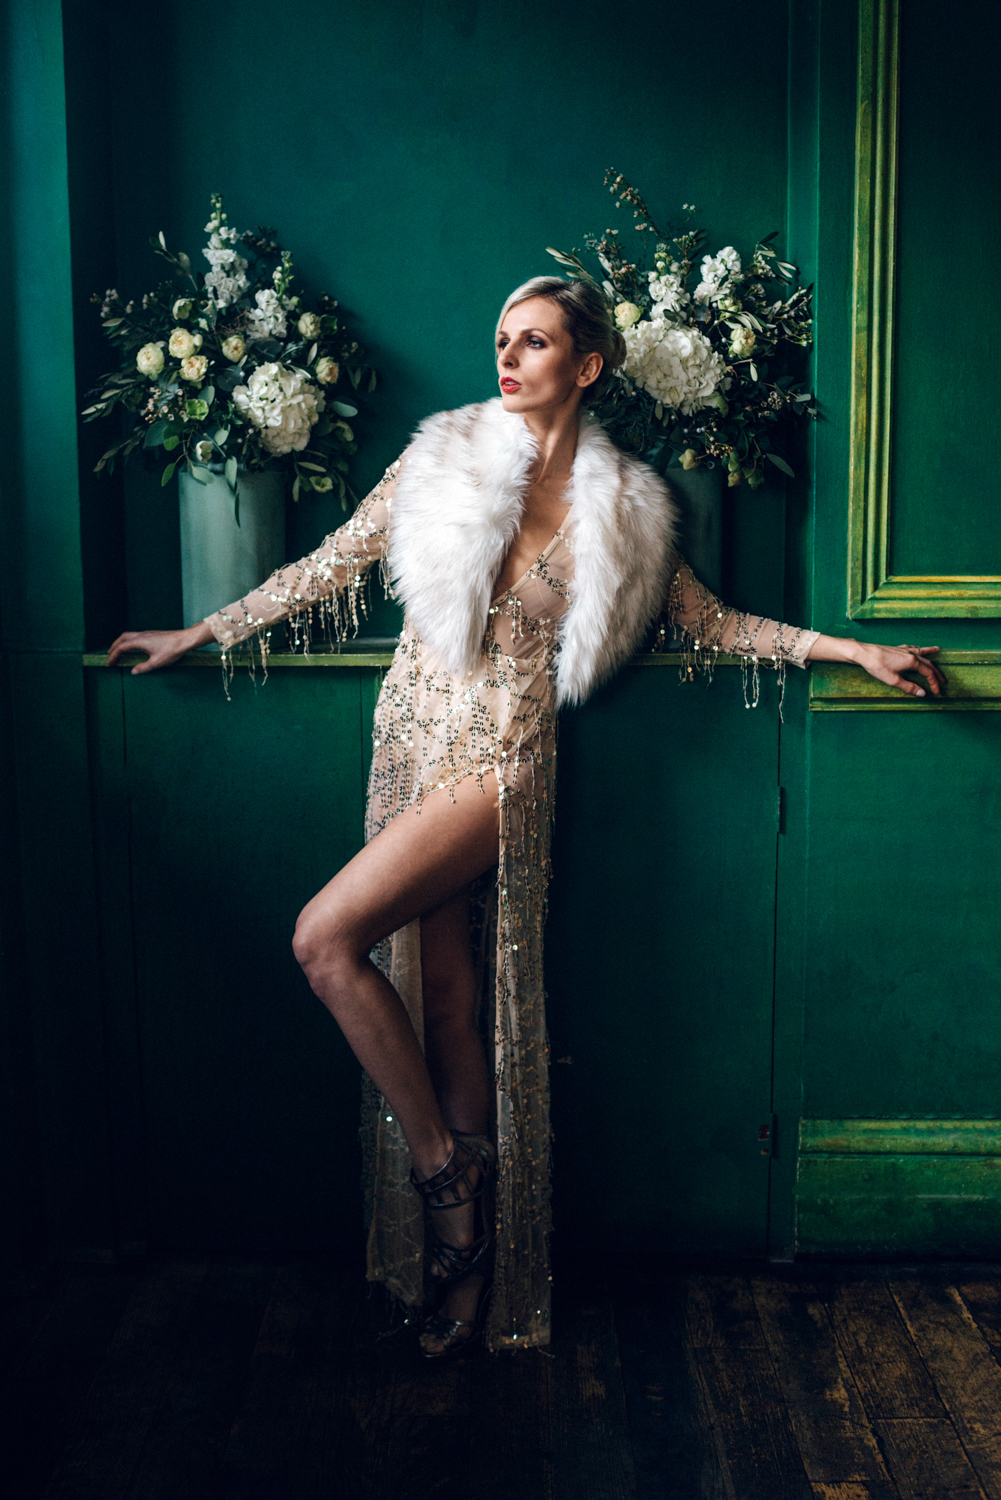 Margo Ryszczuk Photography - Its all about the glitter, sparkle and shine art deco inspired wedding shoot 864358734